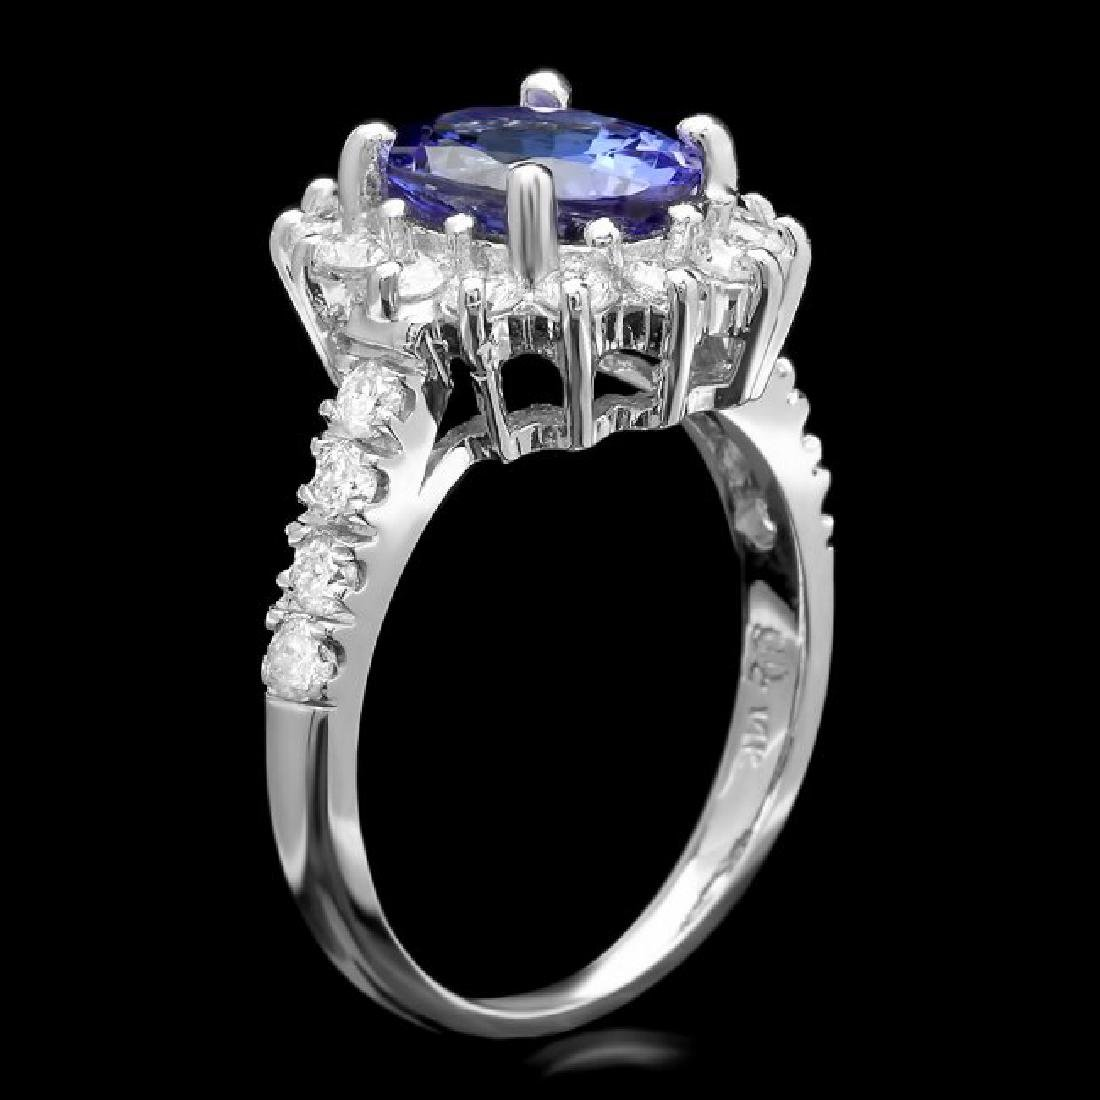 14k White Gold 2.5ct Tanzanite 1ct Diamond Ring - 2